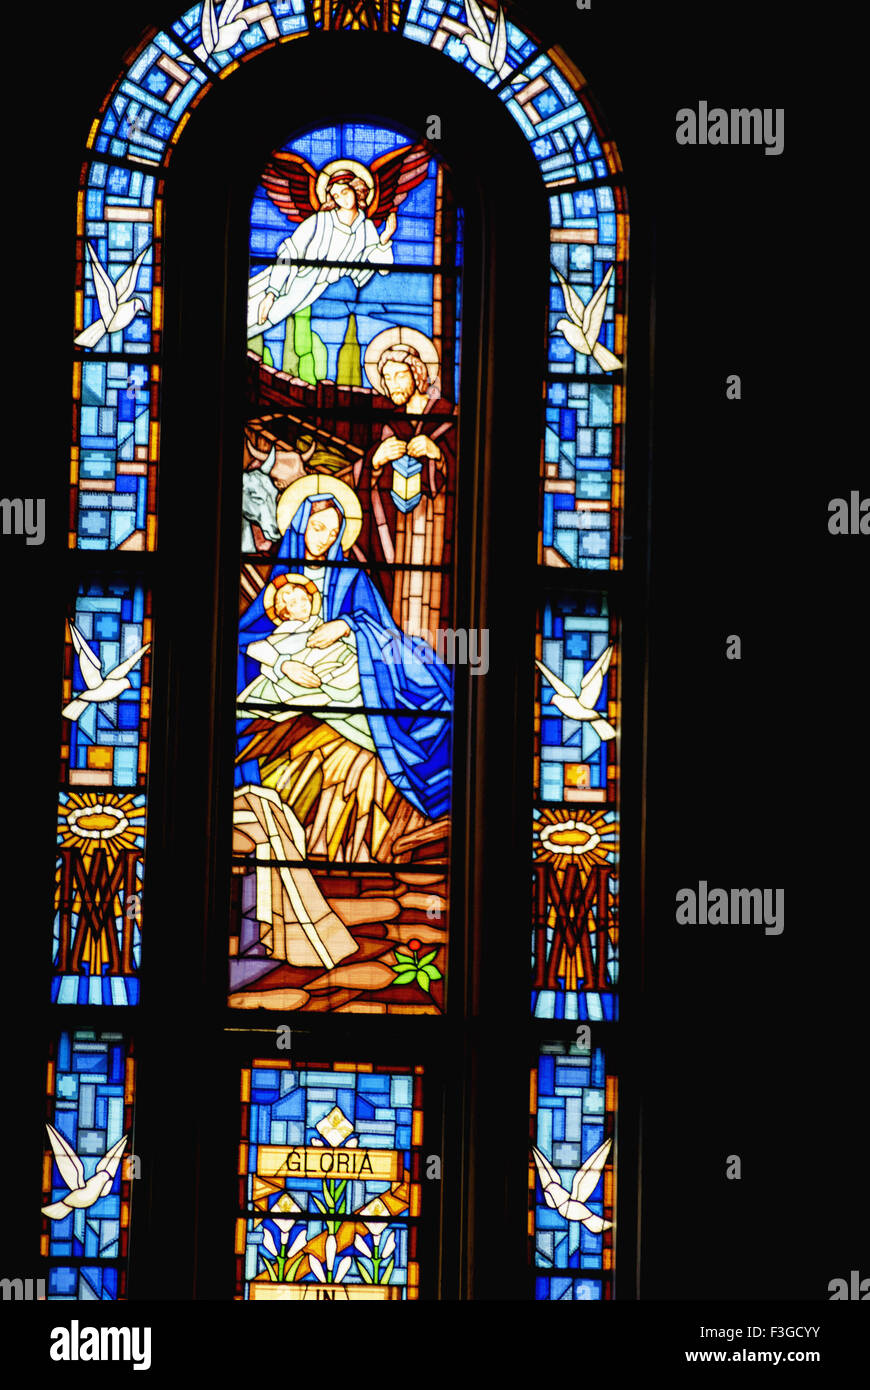 Gloria glory to god birth of Jesus on stained glass in basilica of St. Benedicta of cross - Stock Image